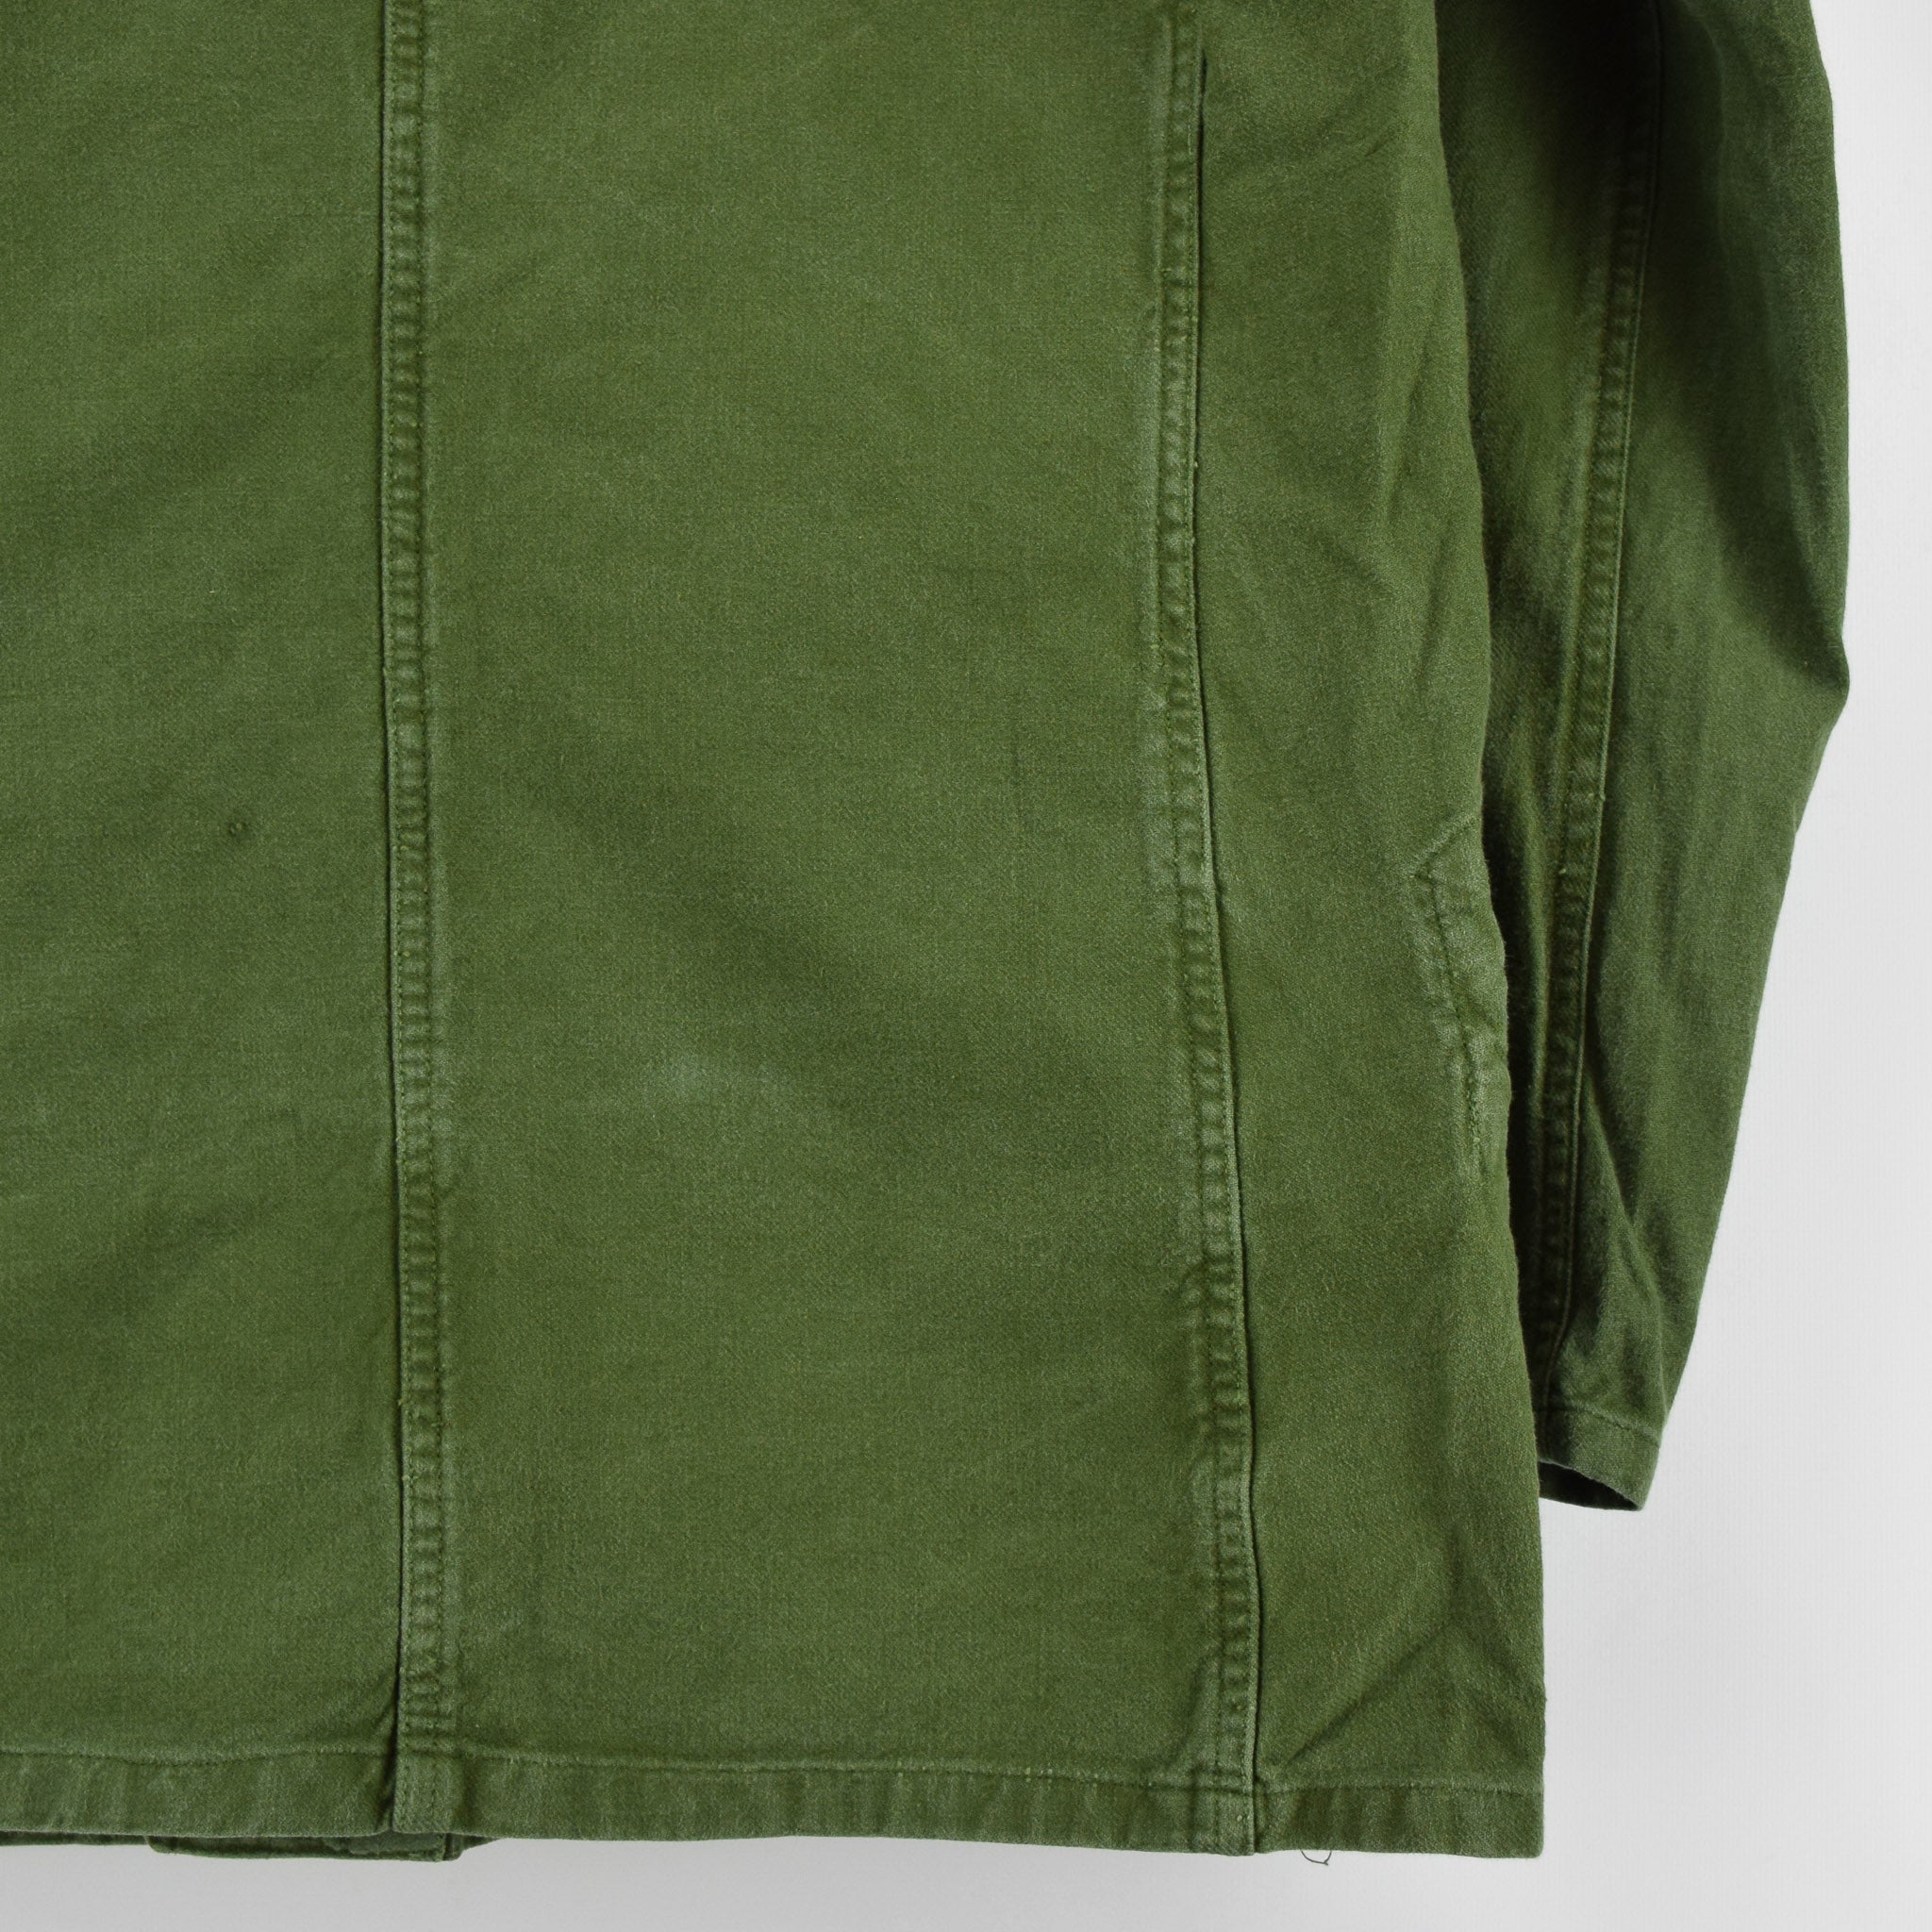 Vintage 60s Swedish Military Field Jacket Worker Style Distressed Green S / M back hem